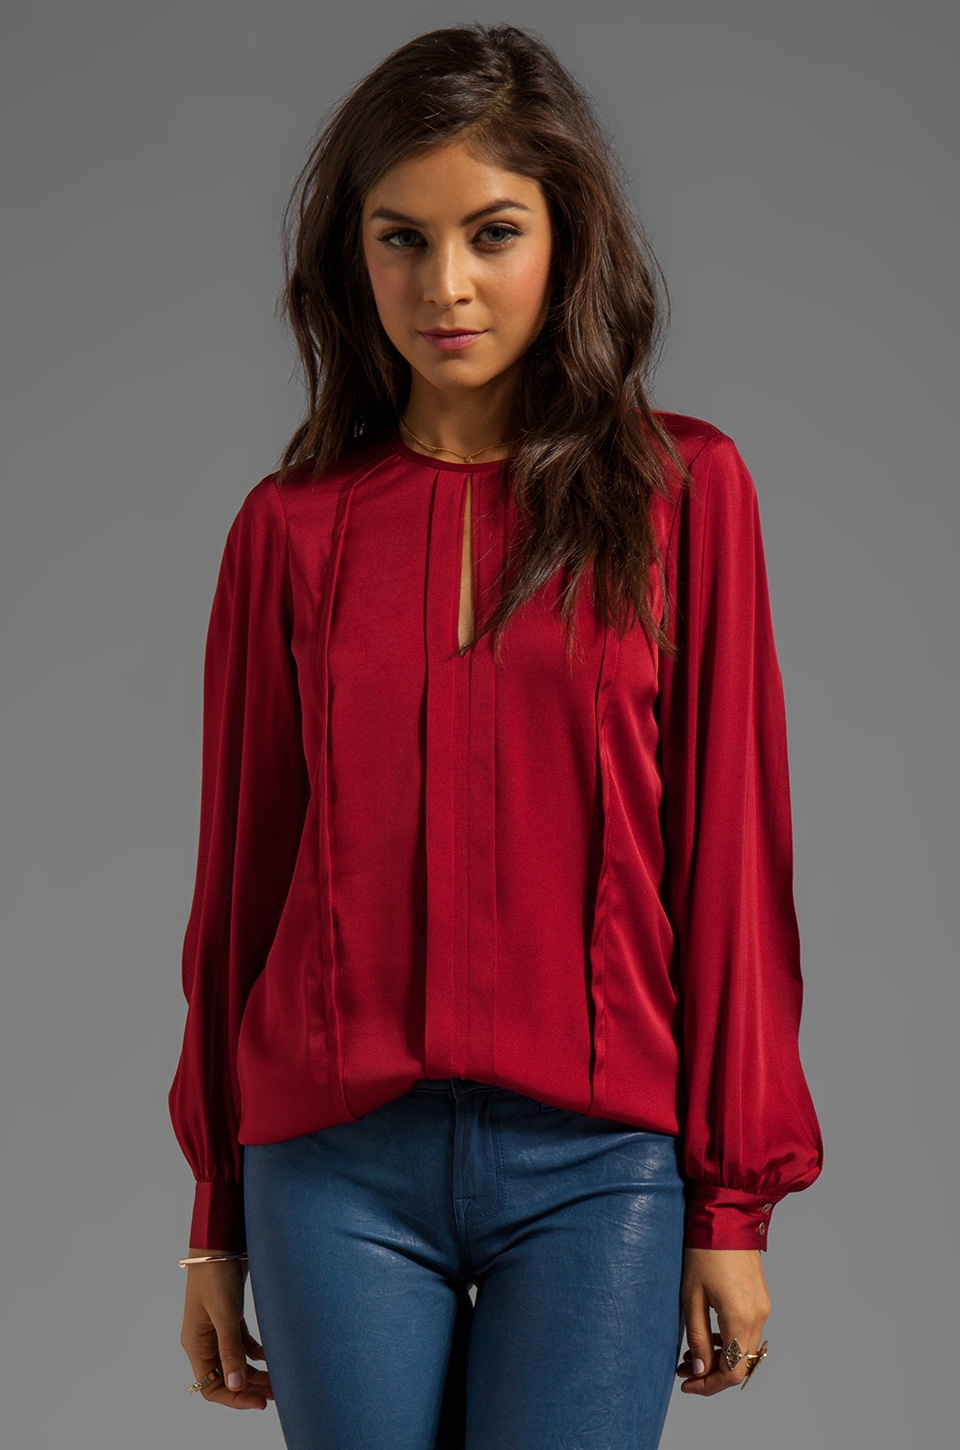 Trina Turk Essential Georgette Maeven Blouse in Pinot